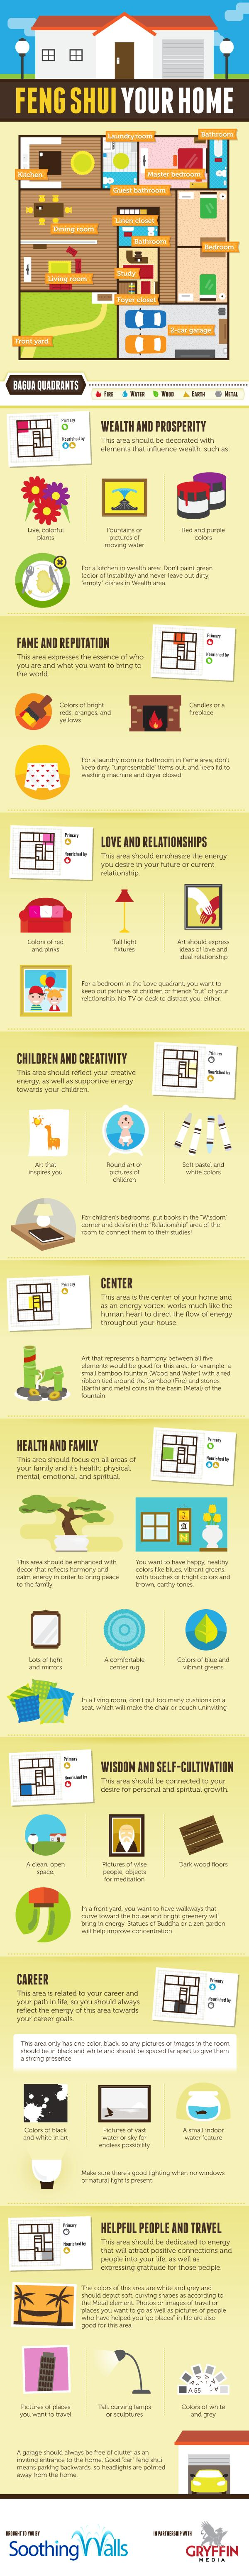 FengShui-SoothingWalls Infographic